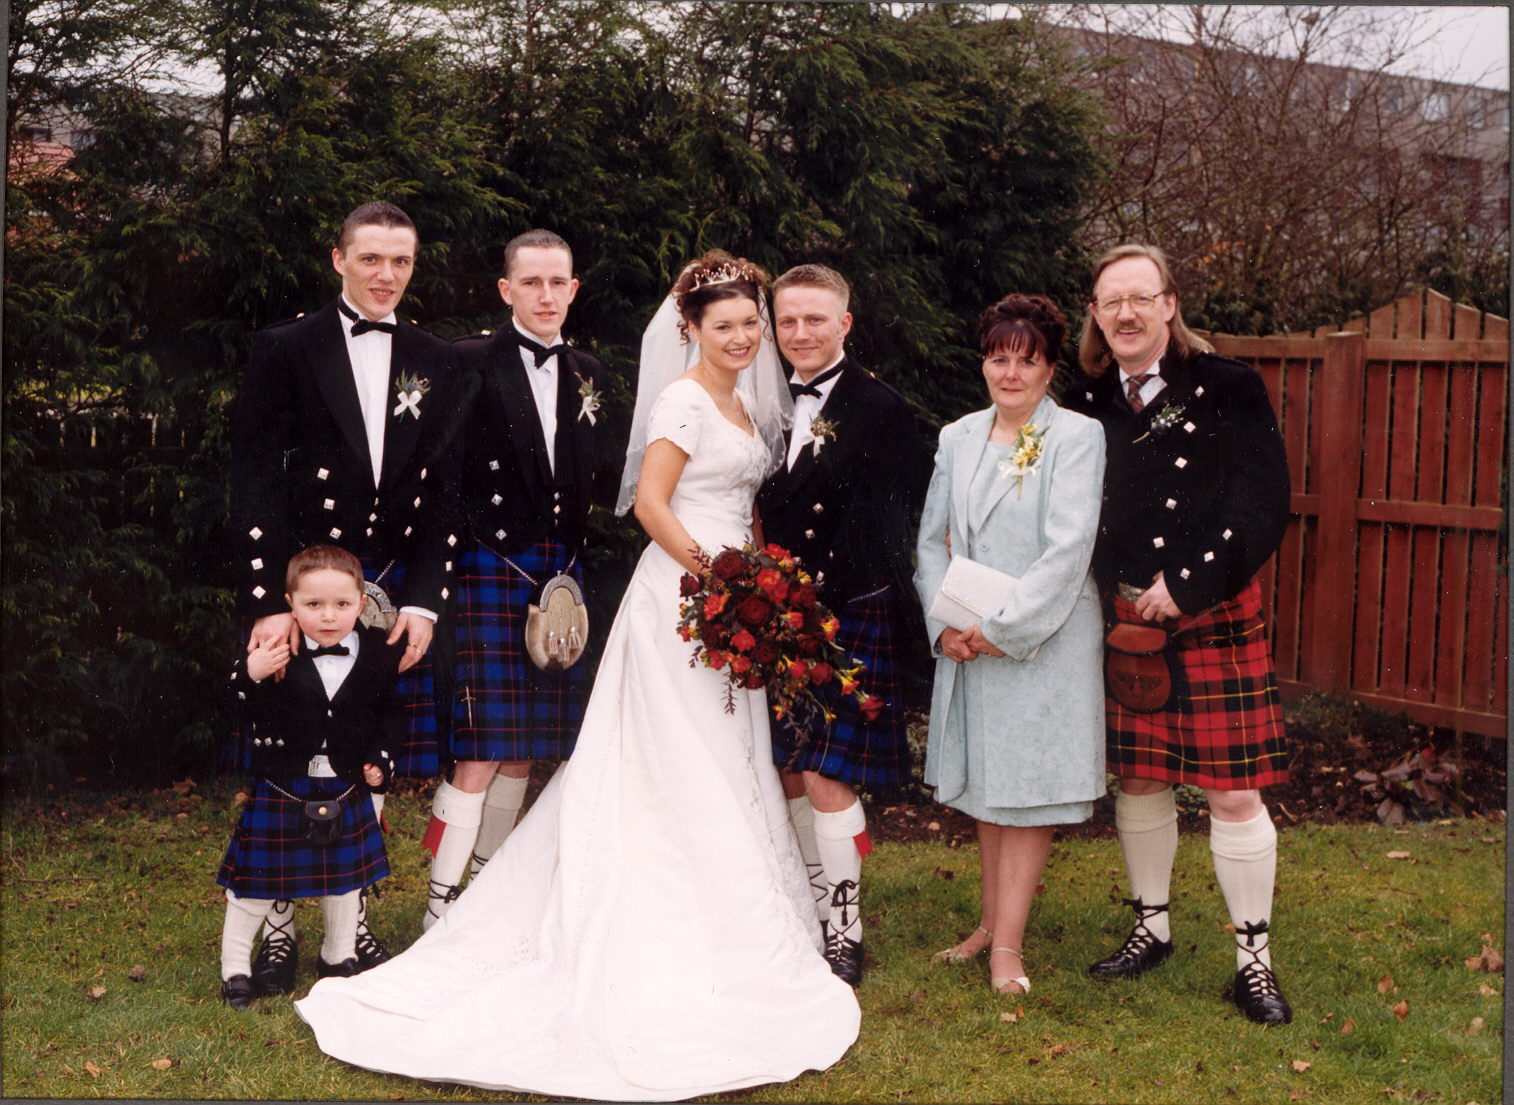 CELTIC WEDDING BAND Scottish Braveheart Style With Bagpipes And Fiddles